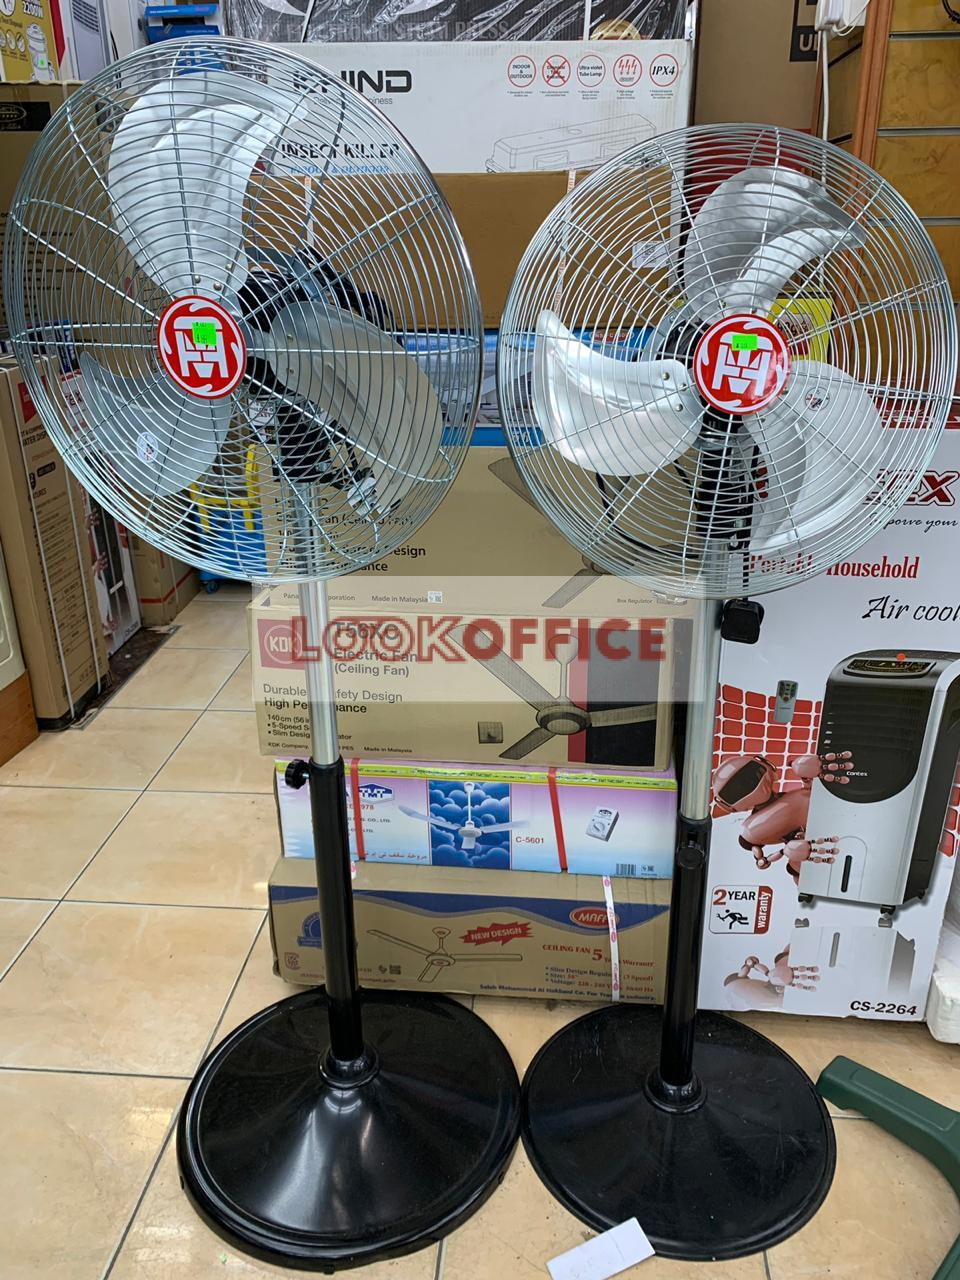 Taiwan enterprises find suppliers of industrial fans, vertical fans, wall fans-lookoffice.vn